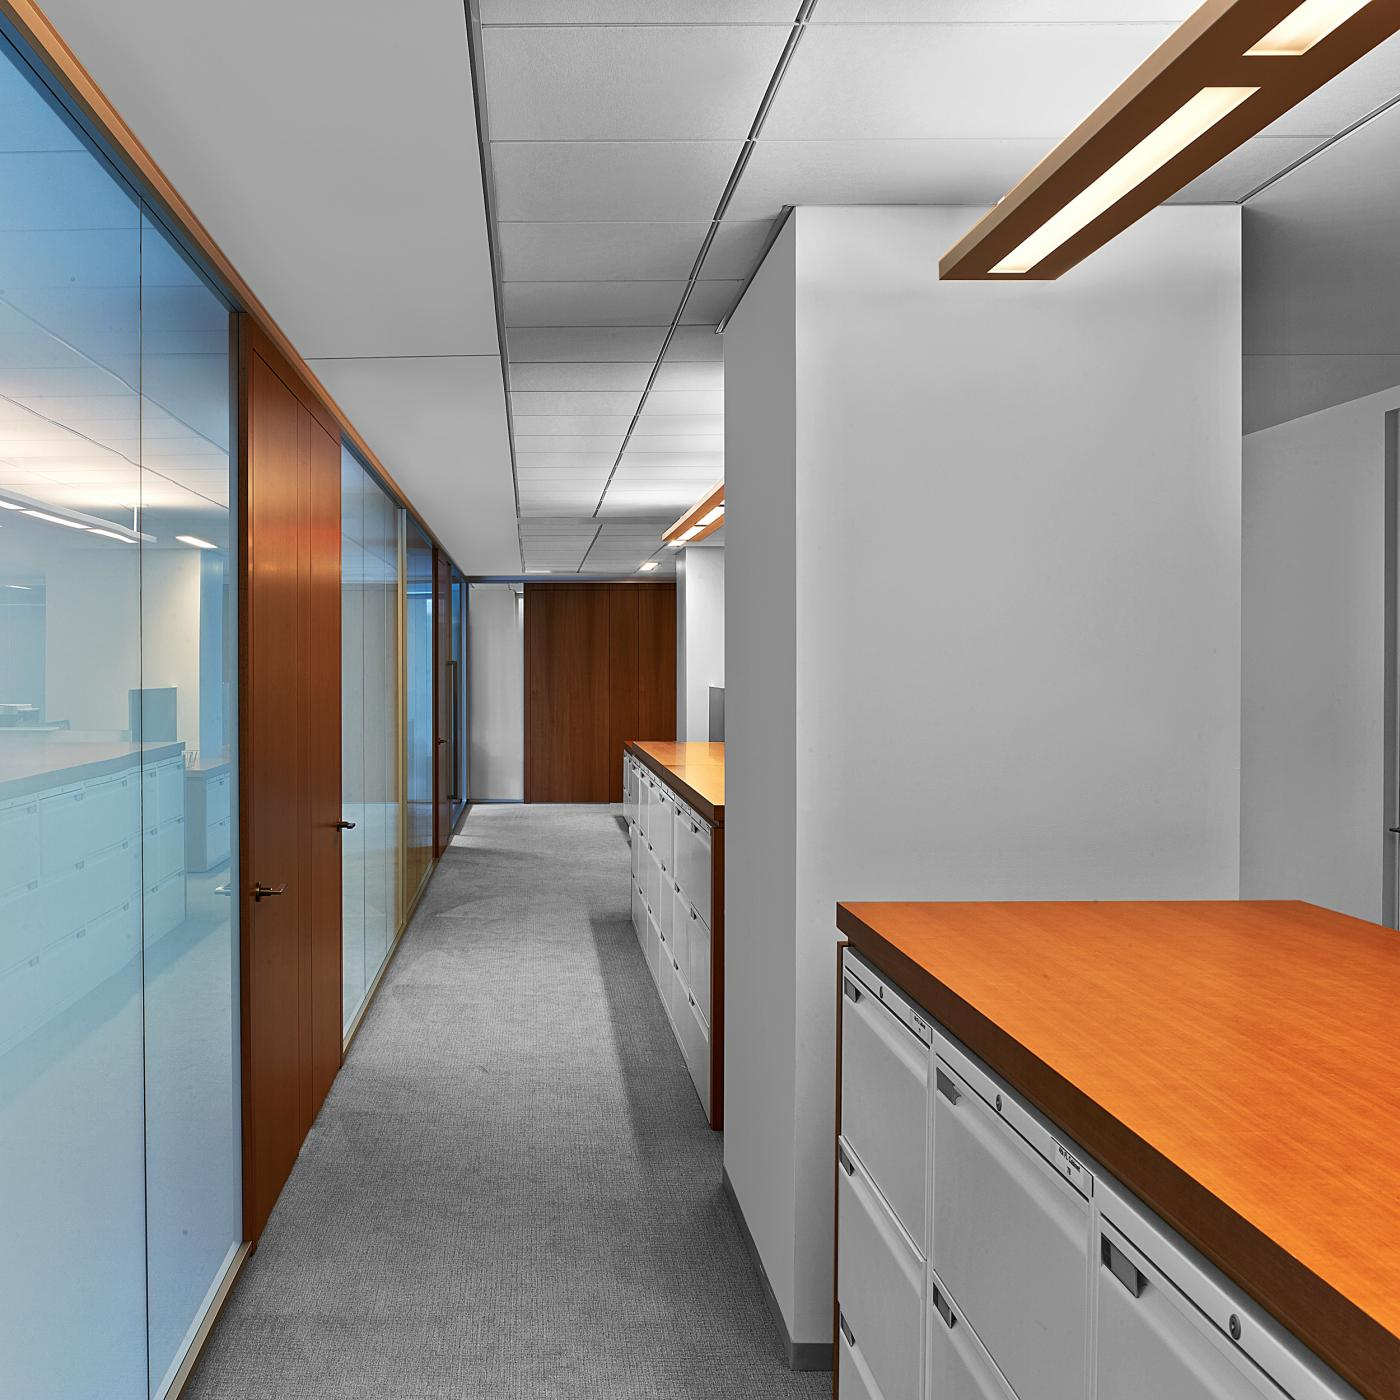 HALCON provided filing cabinets with anigre wood surrounds.